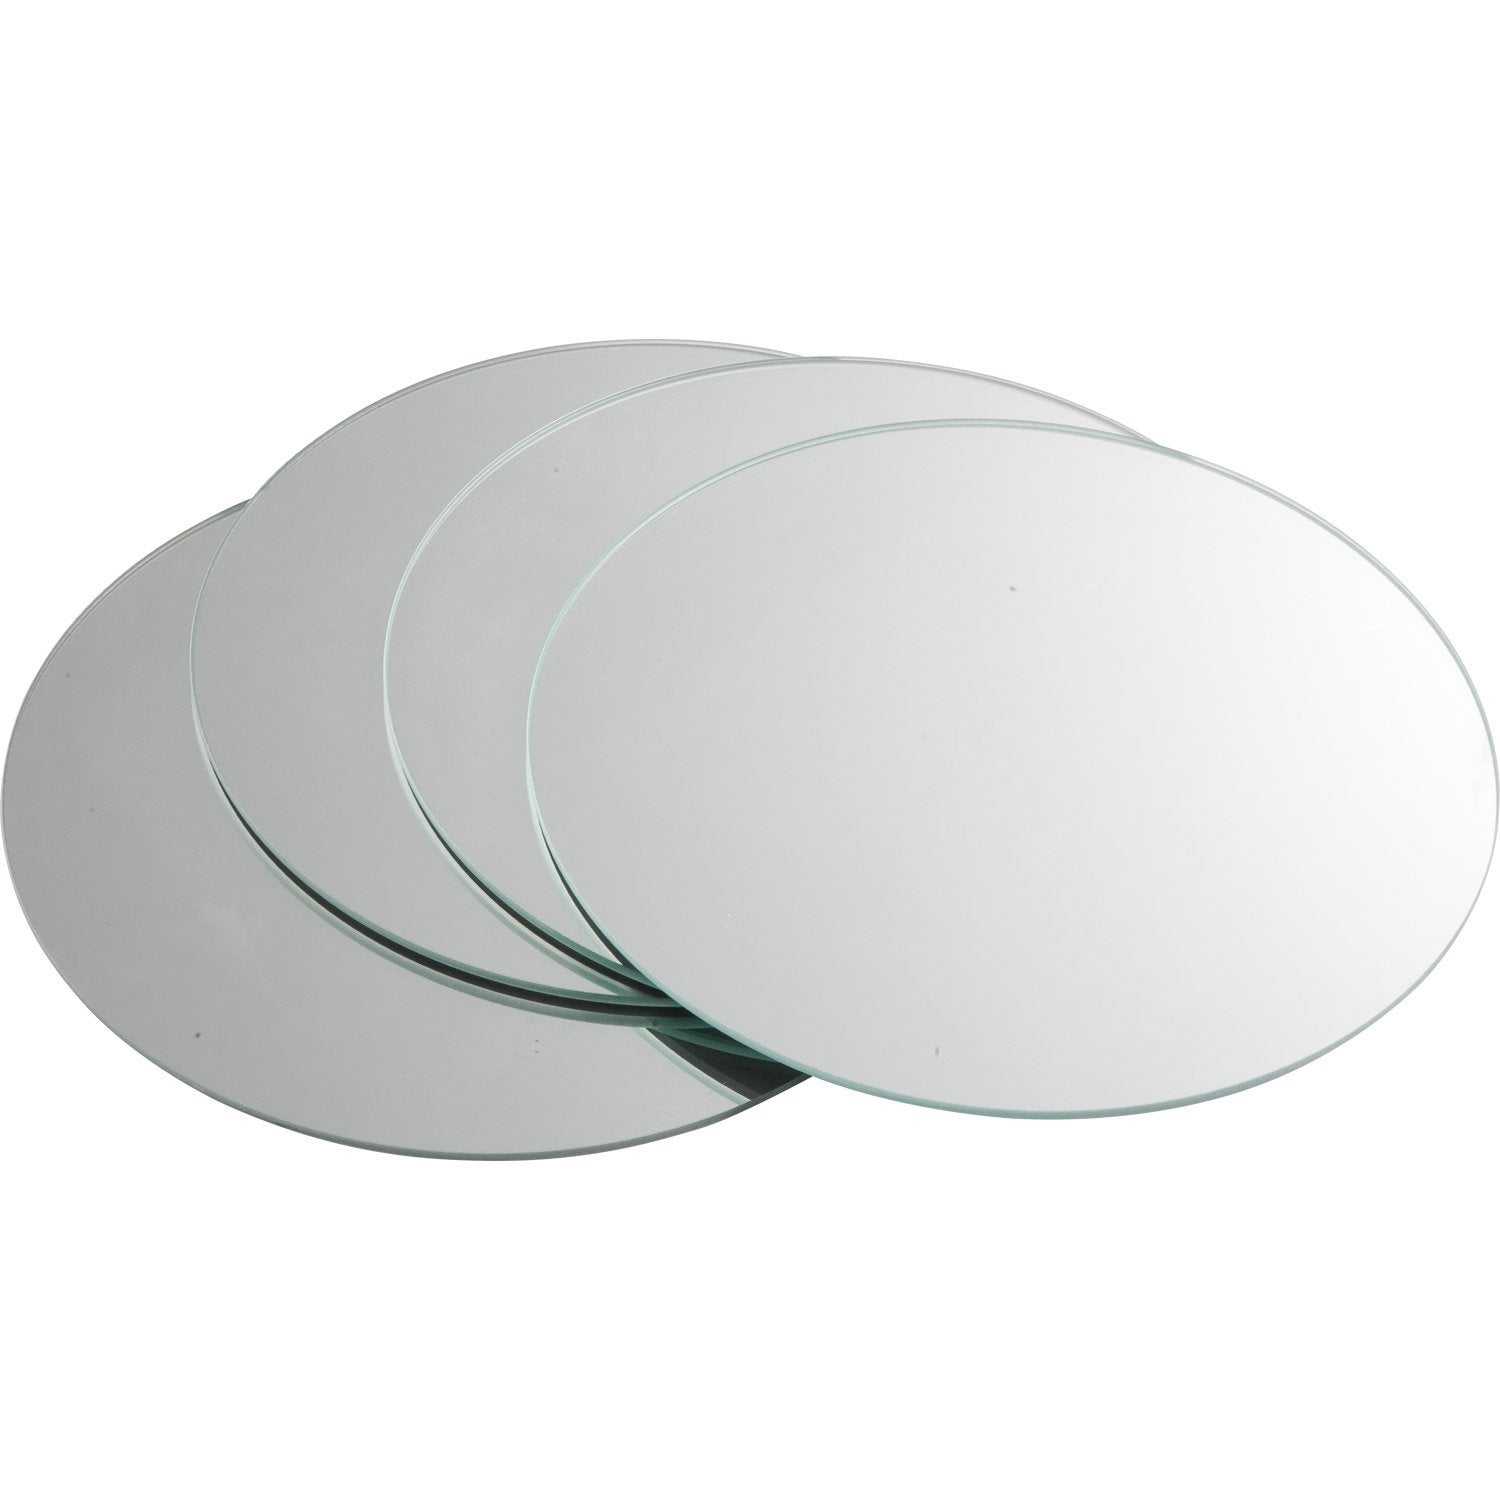 Lot de 4 miroirs non lumineux adh sifs ronds x - Miroir centre de table ...